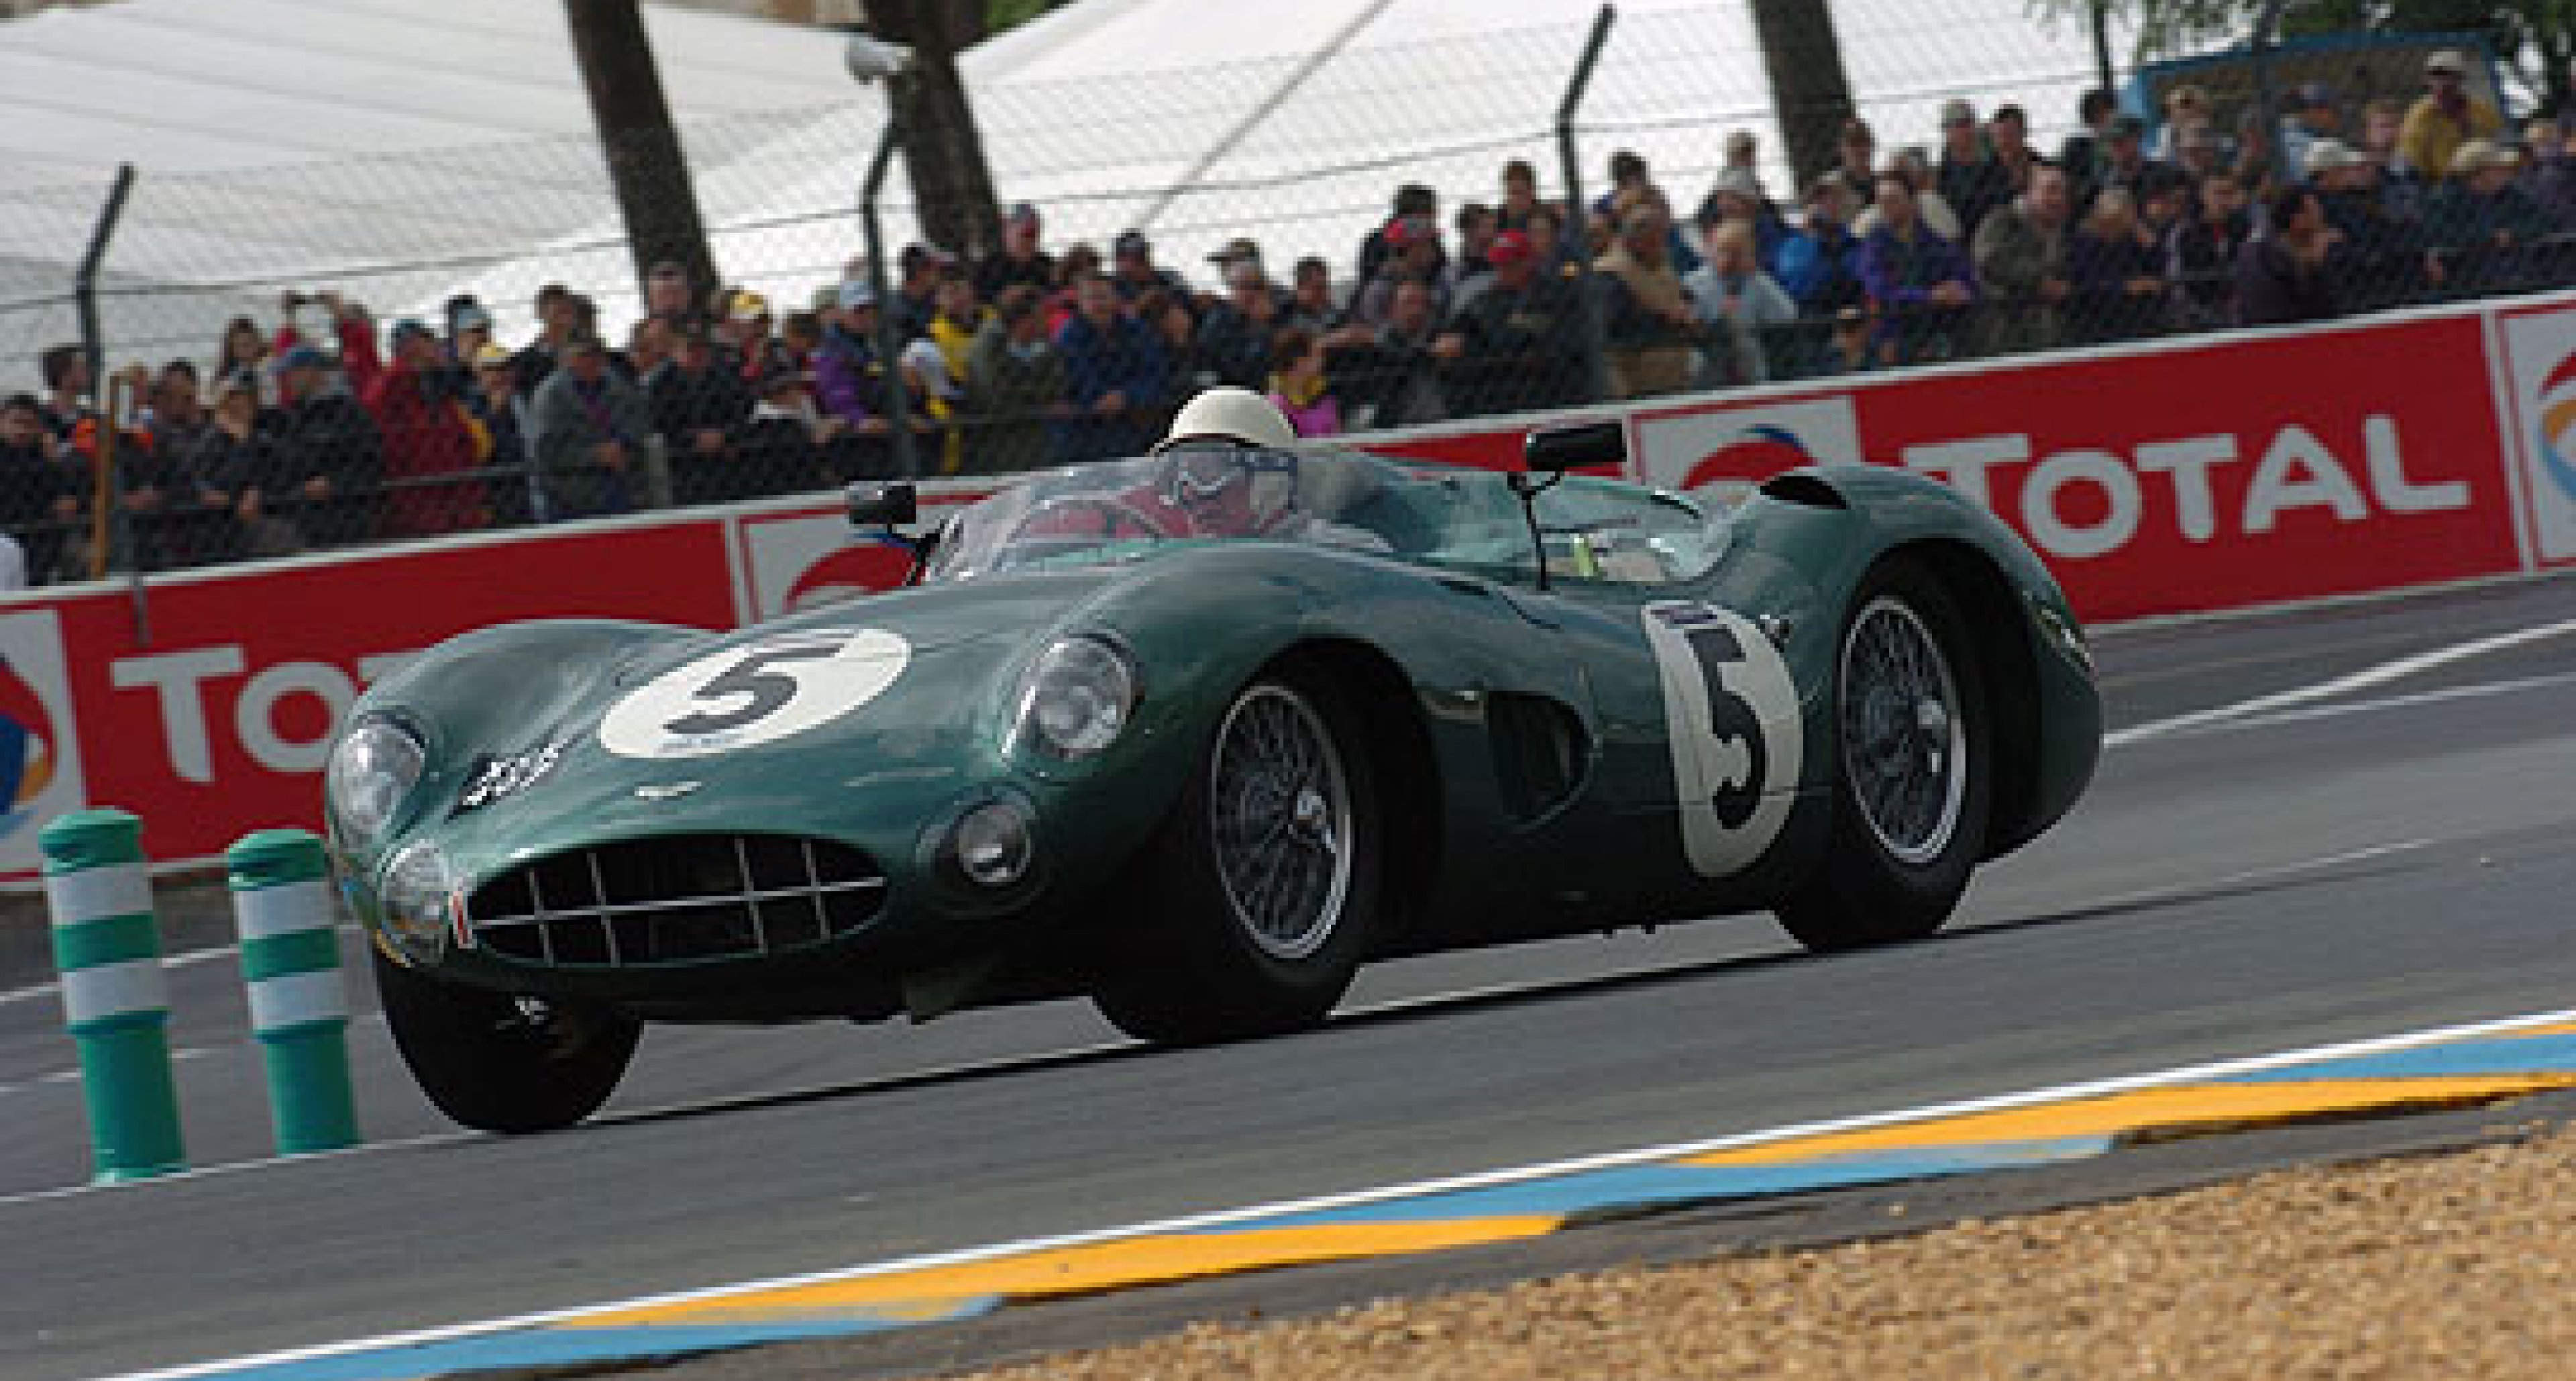 Historic Racers Out in Force, Recession or Not